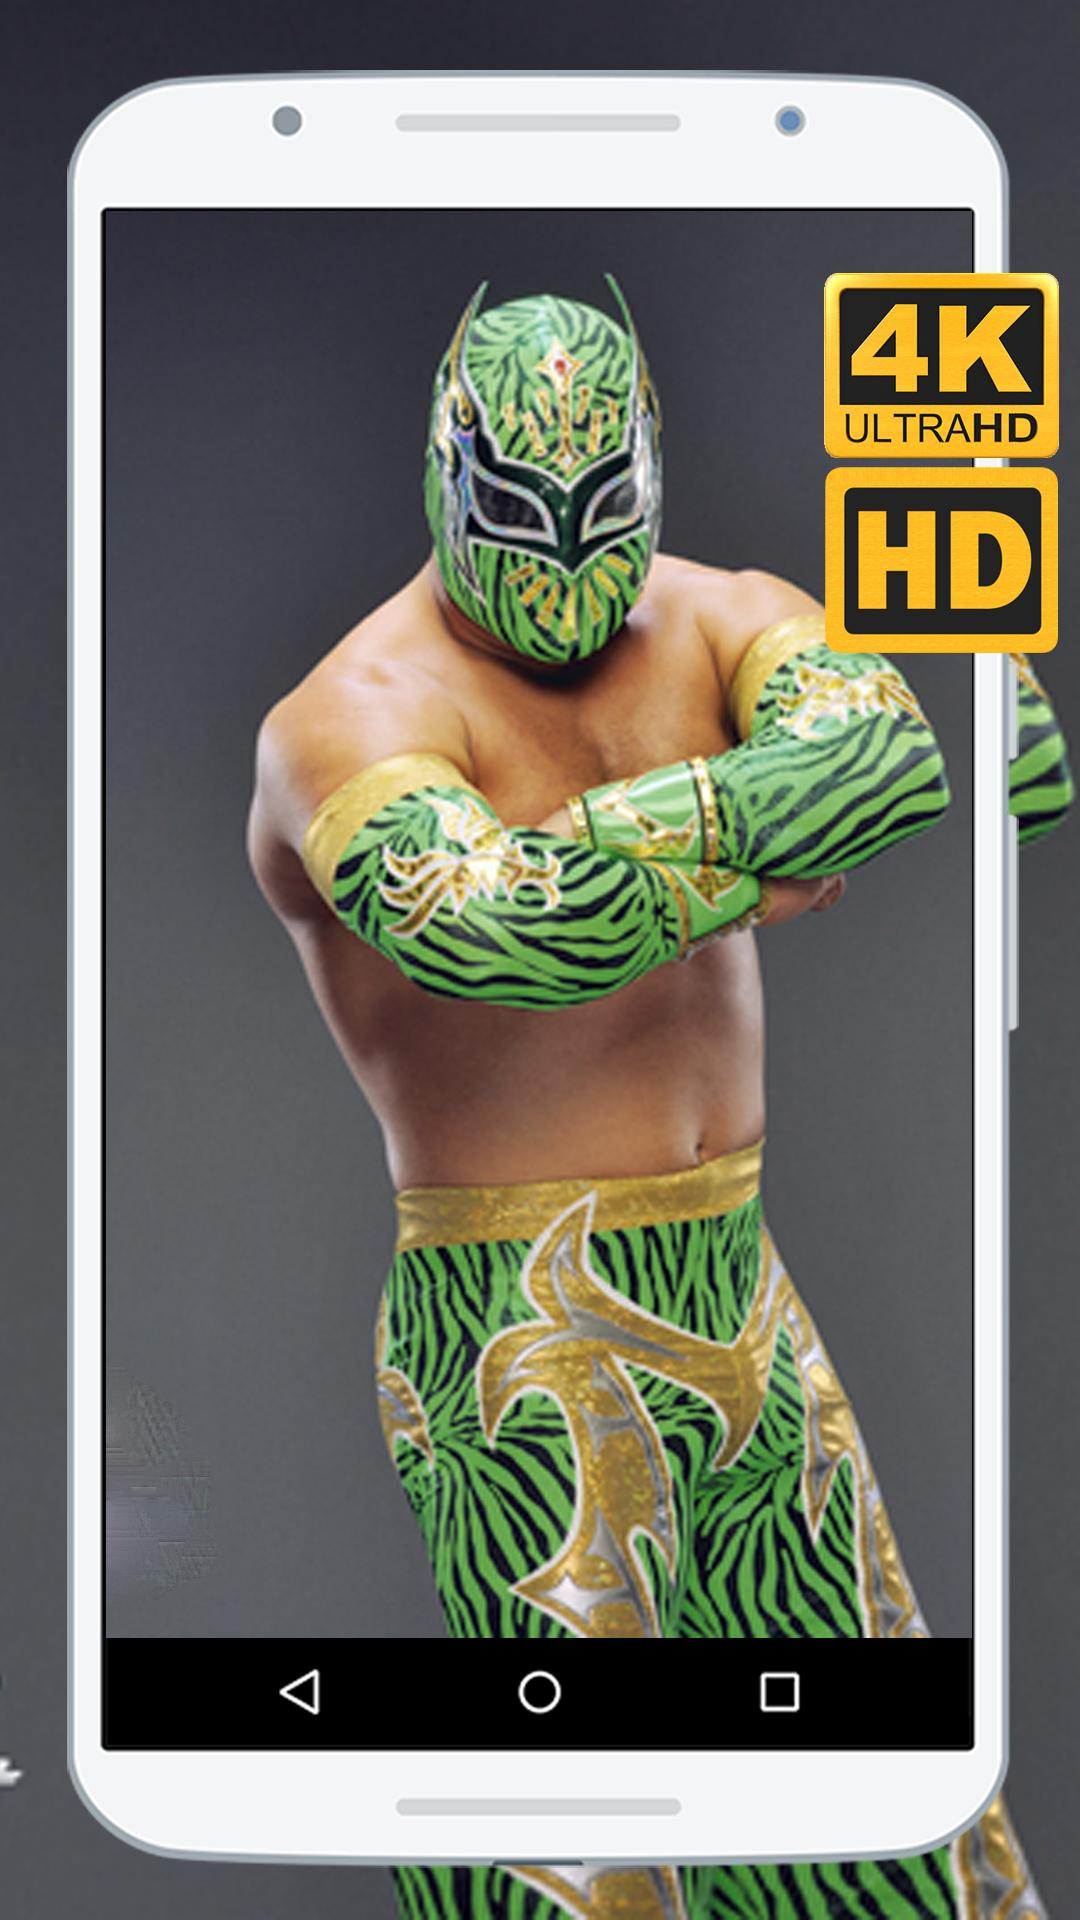 Sin Cara Wallpapers Hd 4k For Android Apk Download